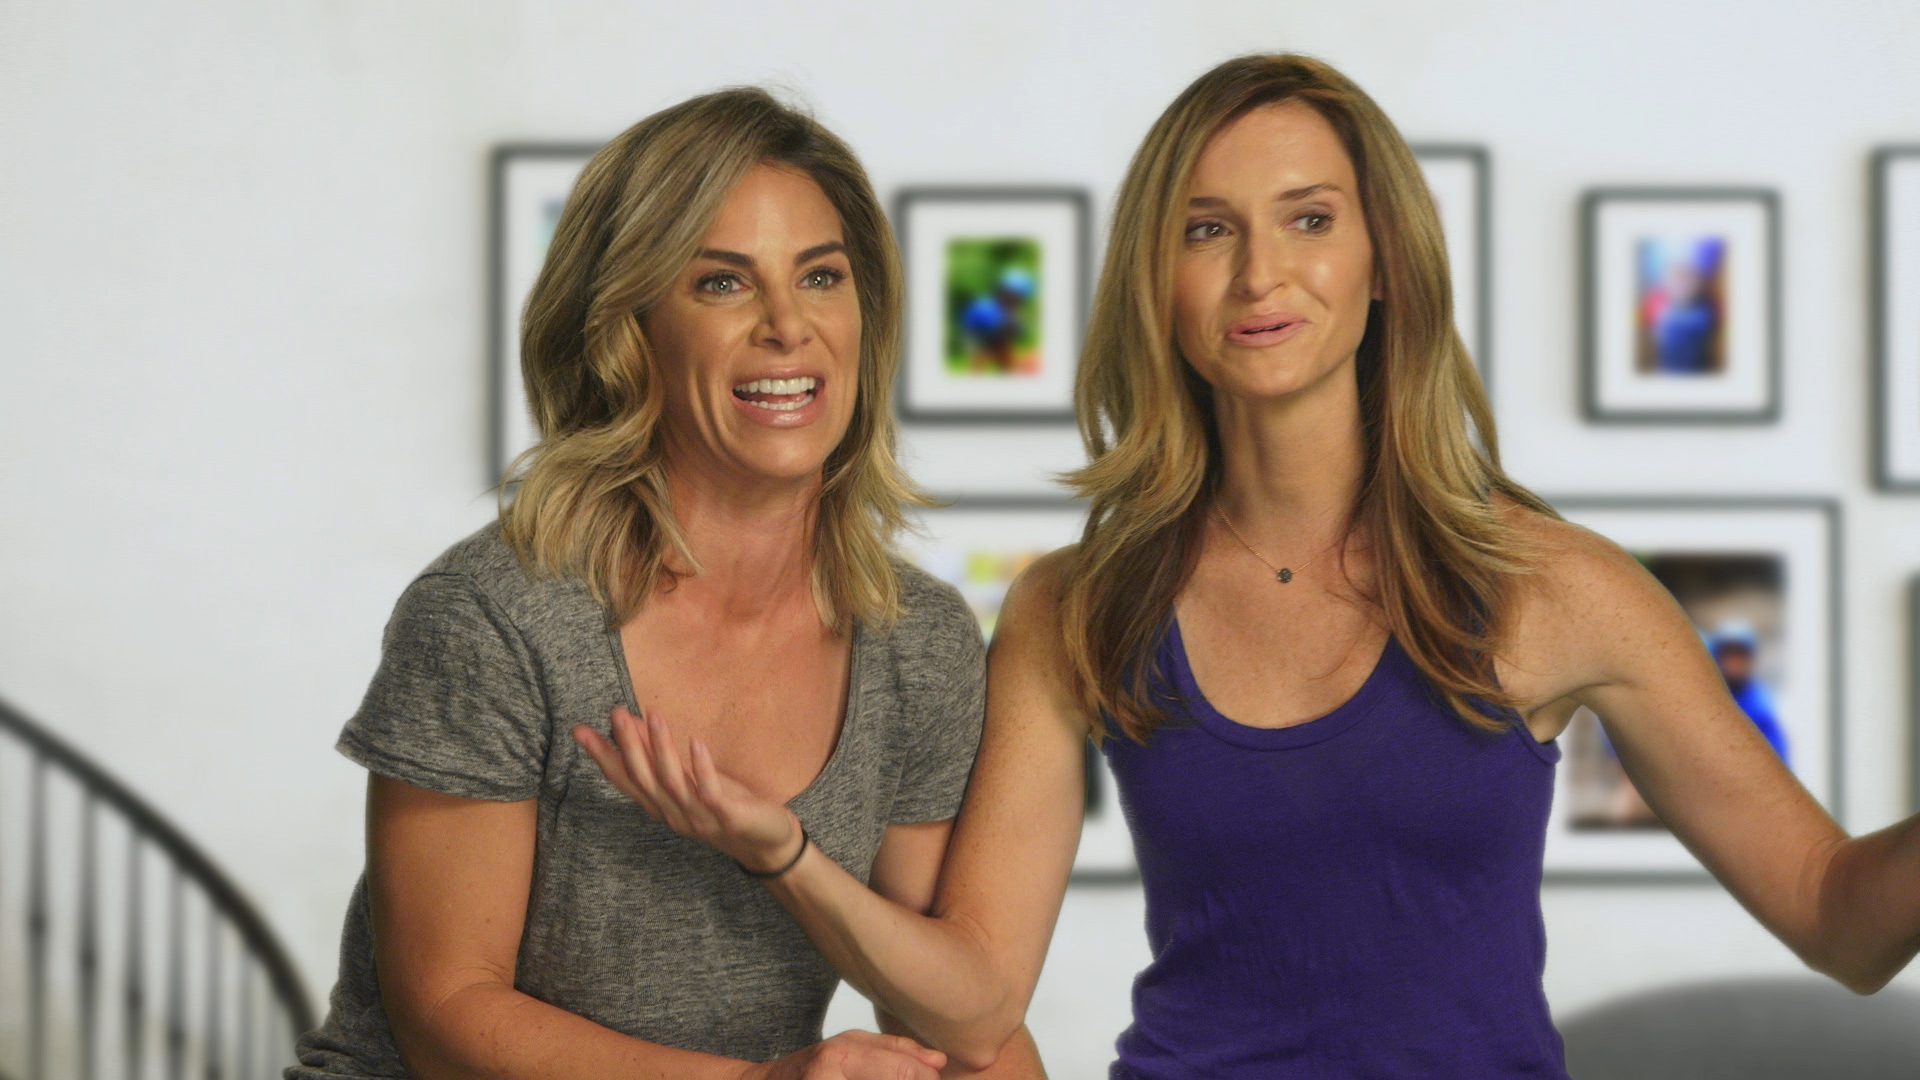 Jillian Michaels and Heidi Relive First Hawaii Vacation